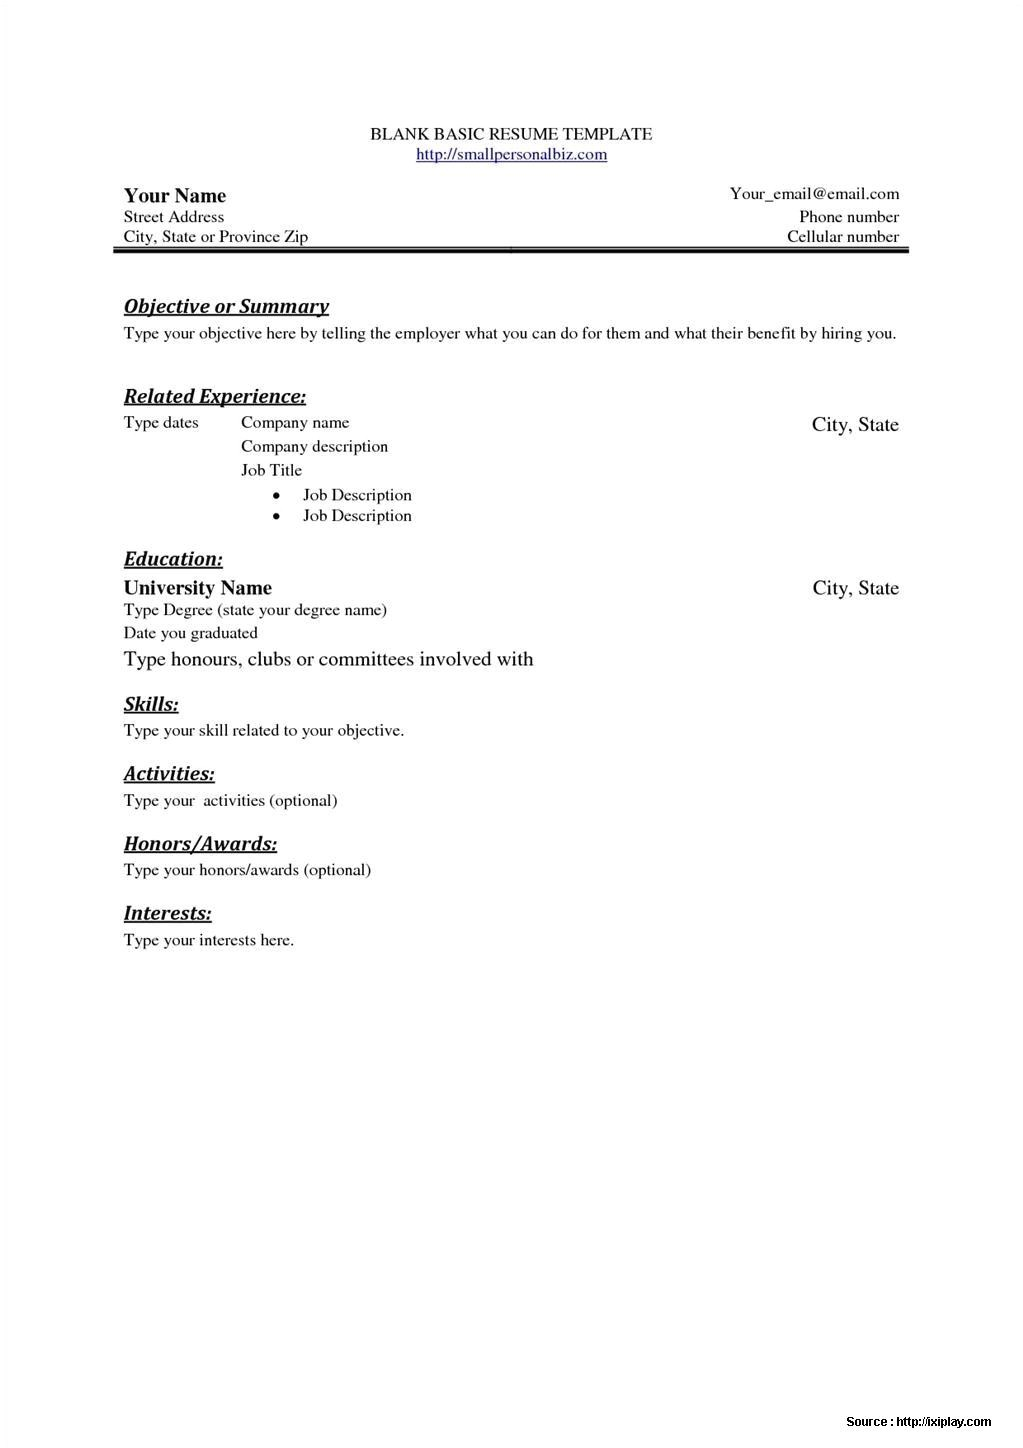 Free Resume Templates for Word Starter 2010 Free Resume Templates for Word Starter 2010 Resume